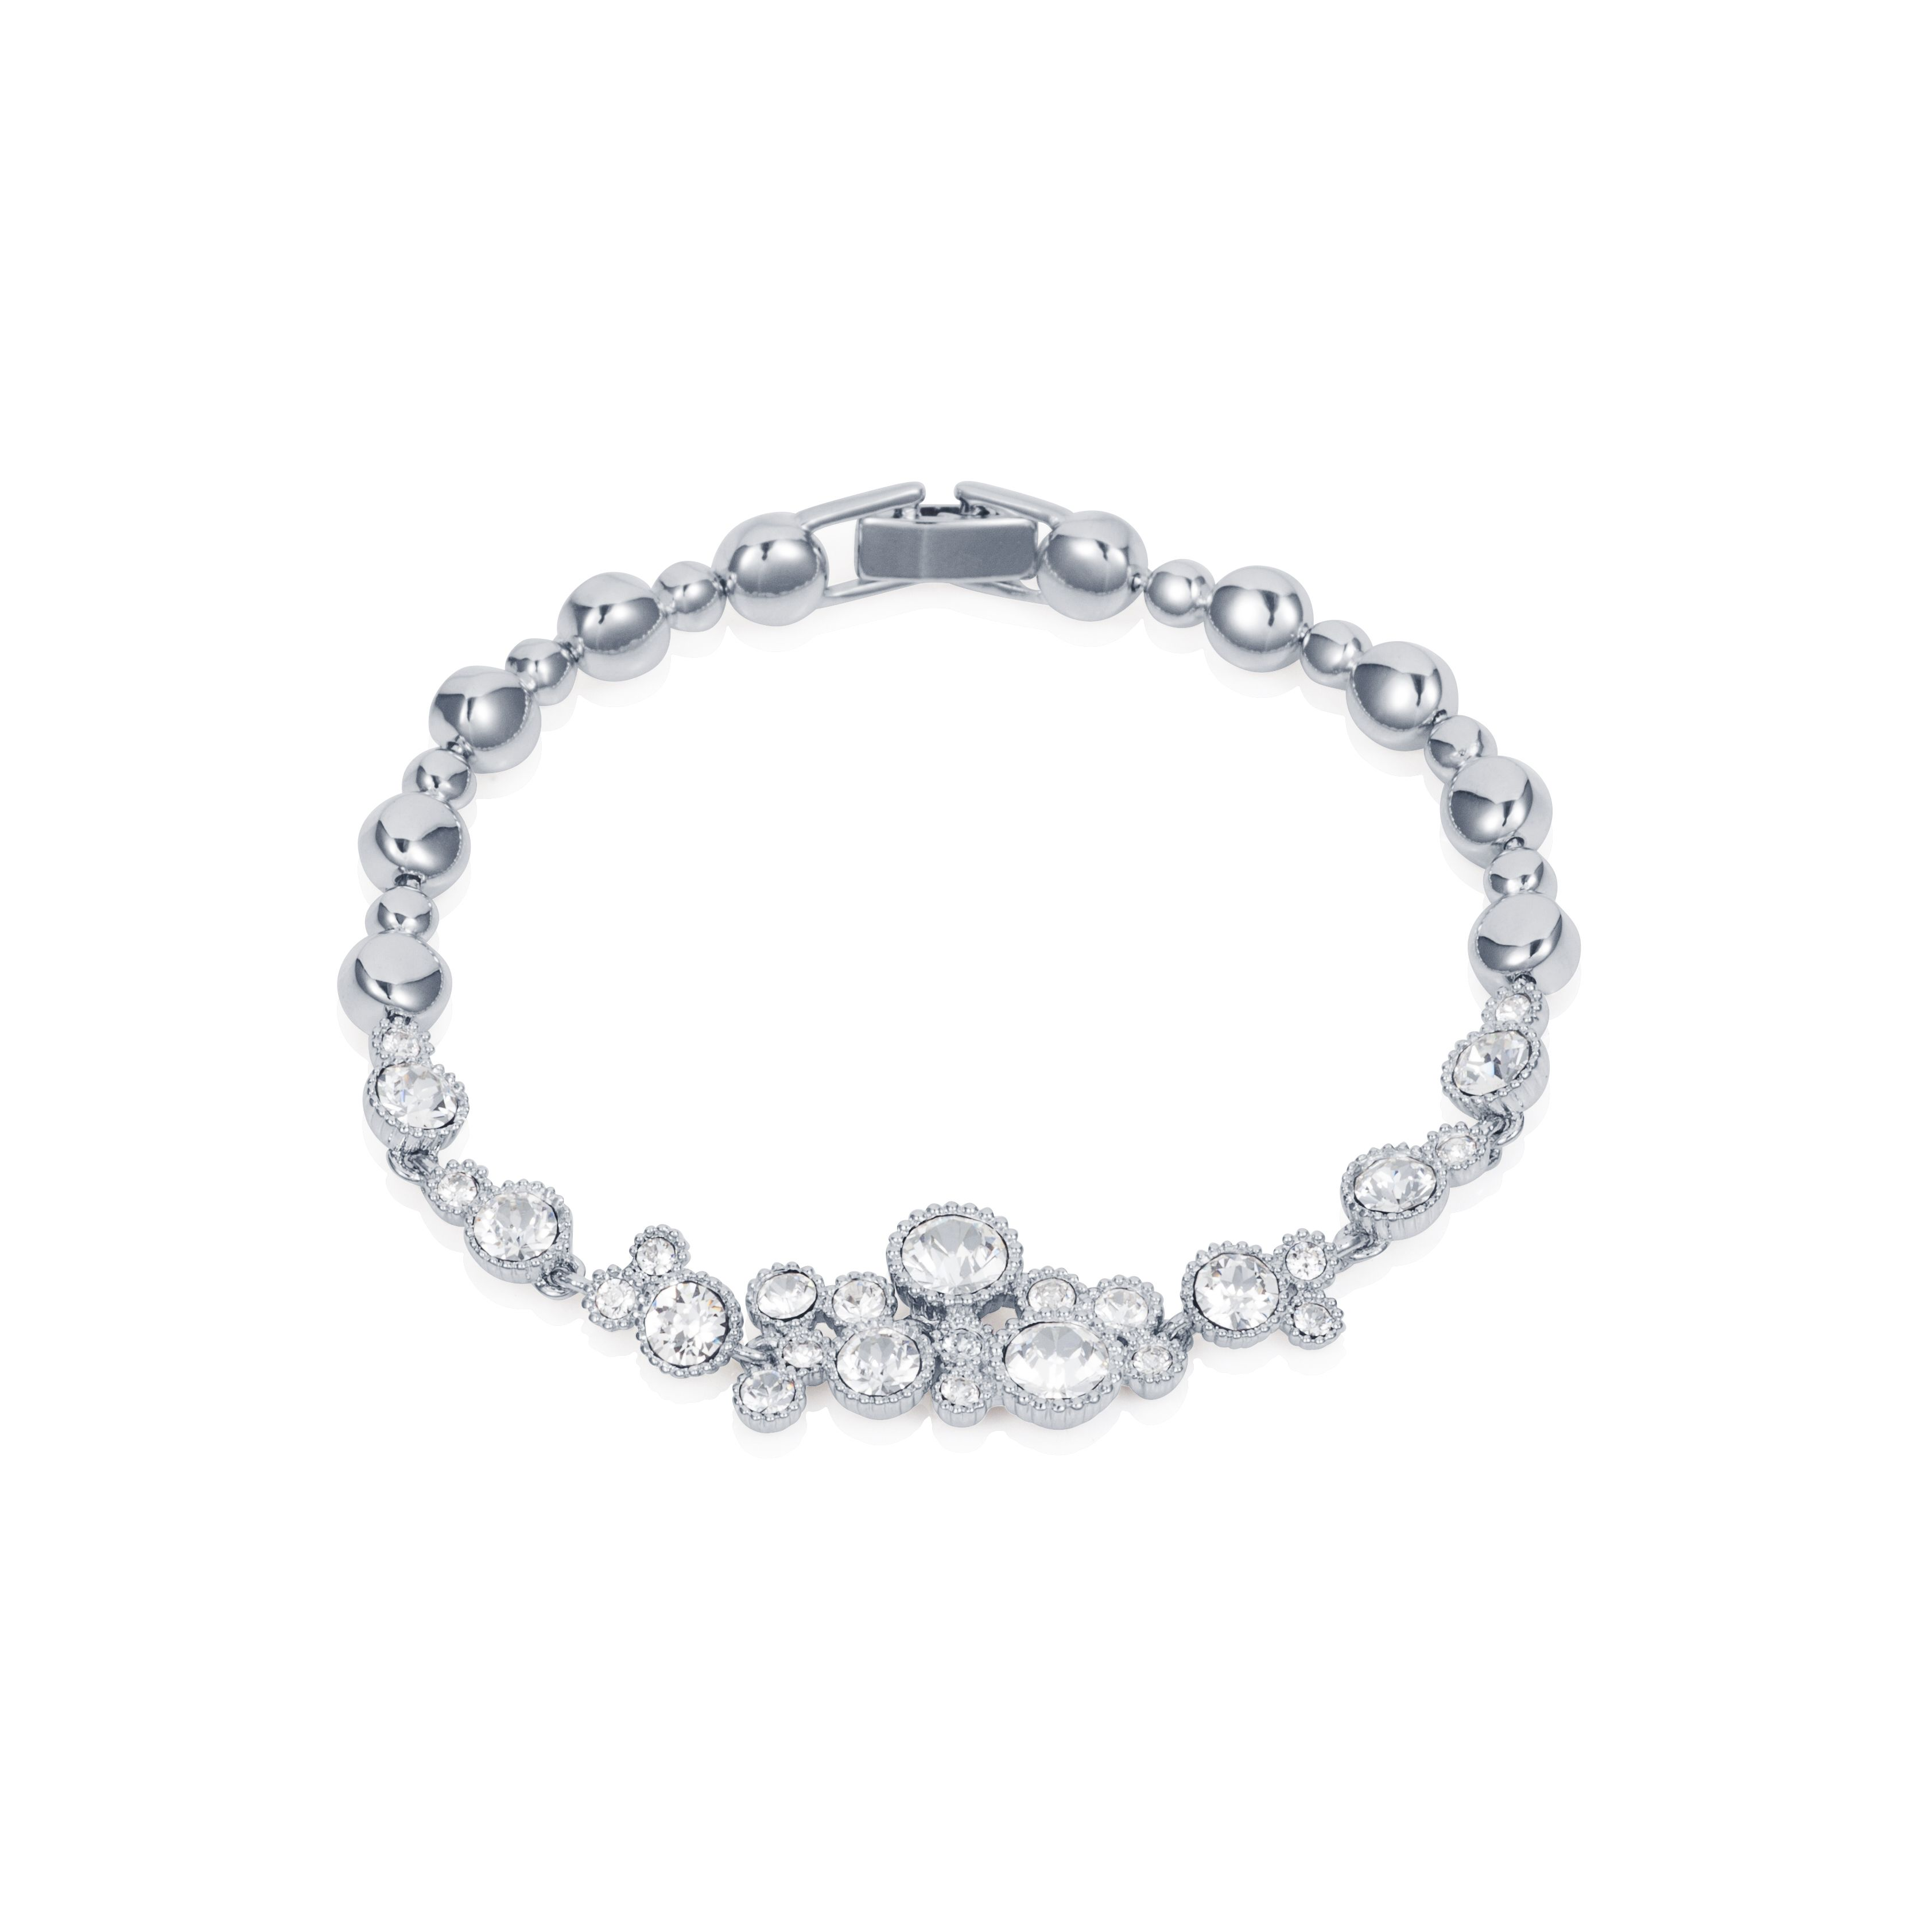 Rhodium plated titania multi bubble bracelet